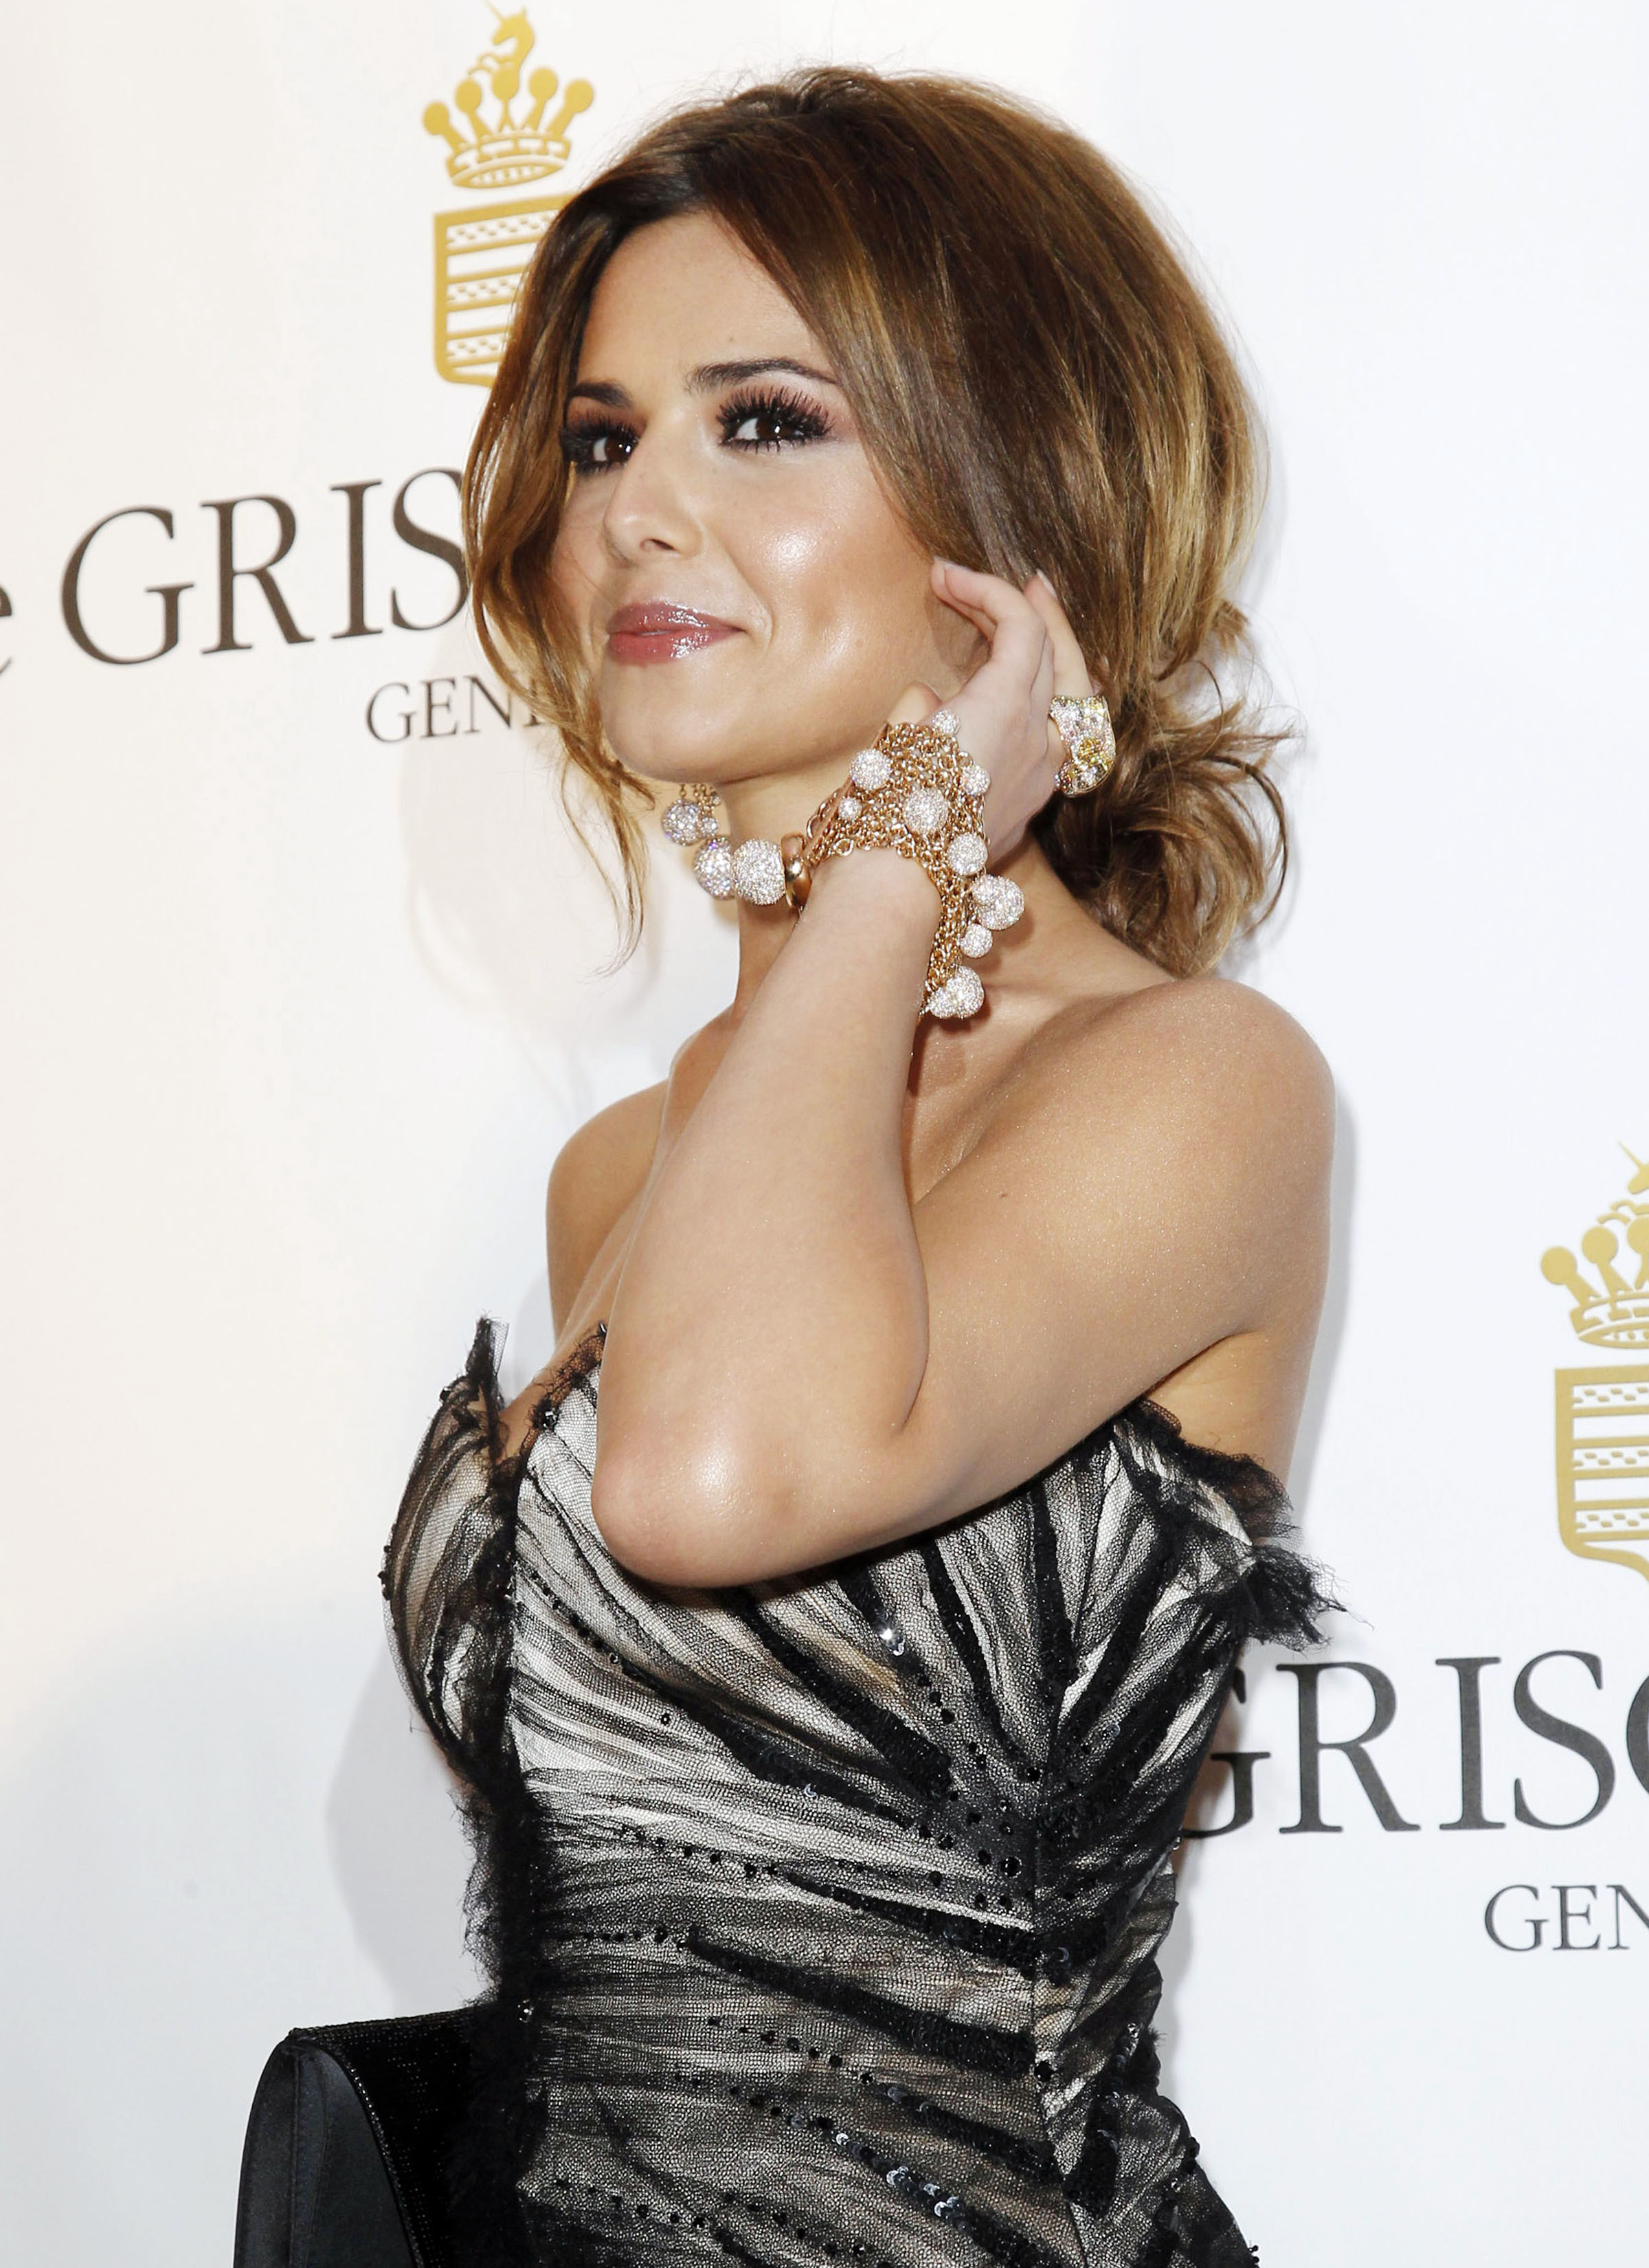 Cheryl cole Celebrity HD Wallpaper